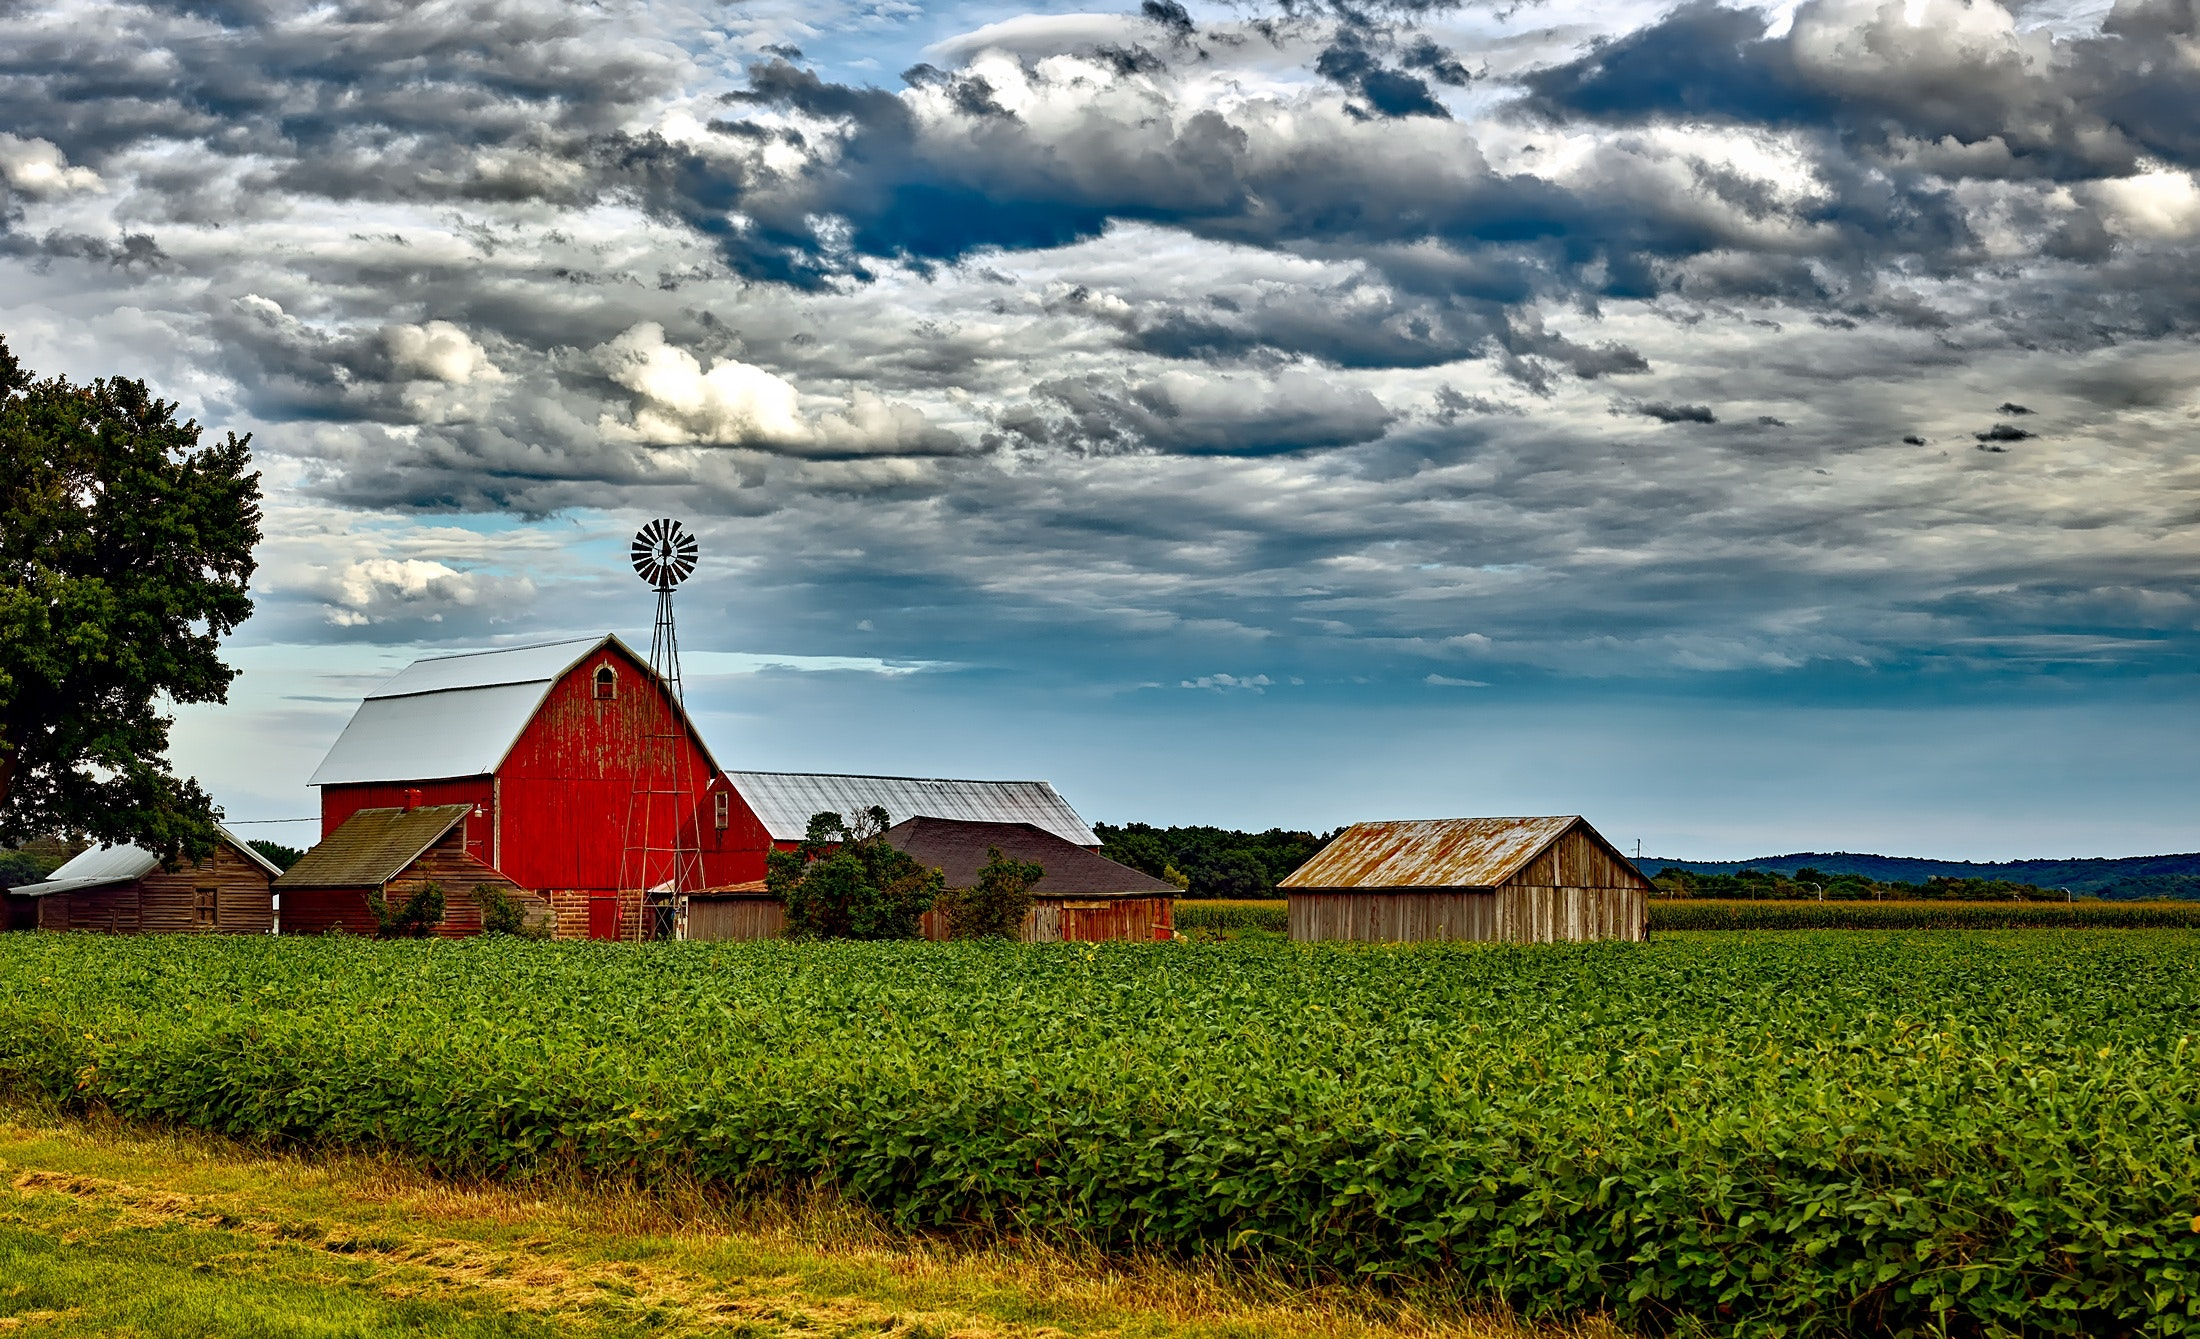 barn-buildings-clouds-248880